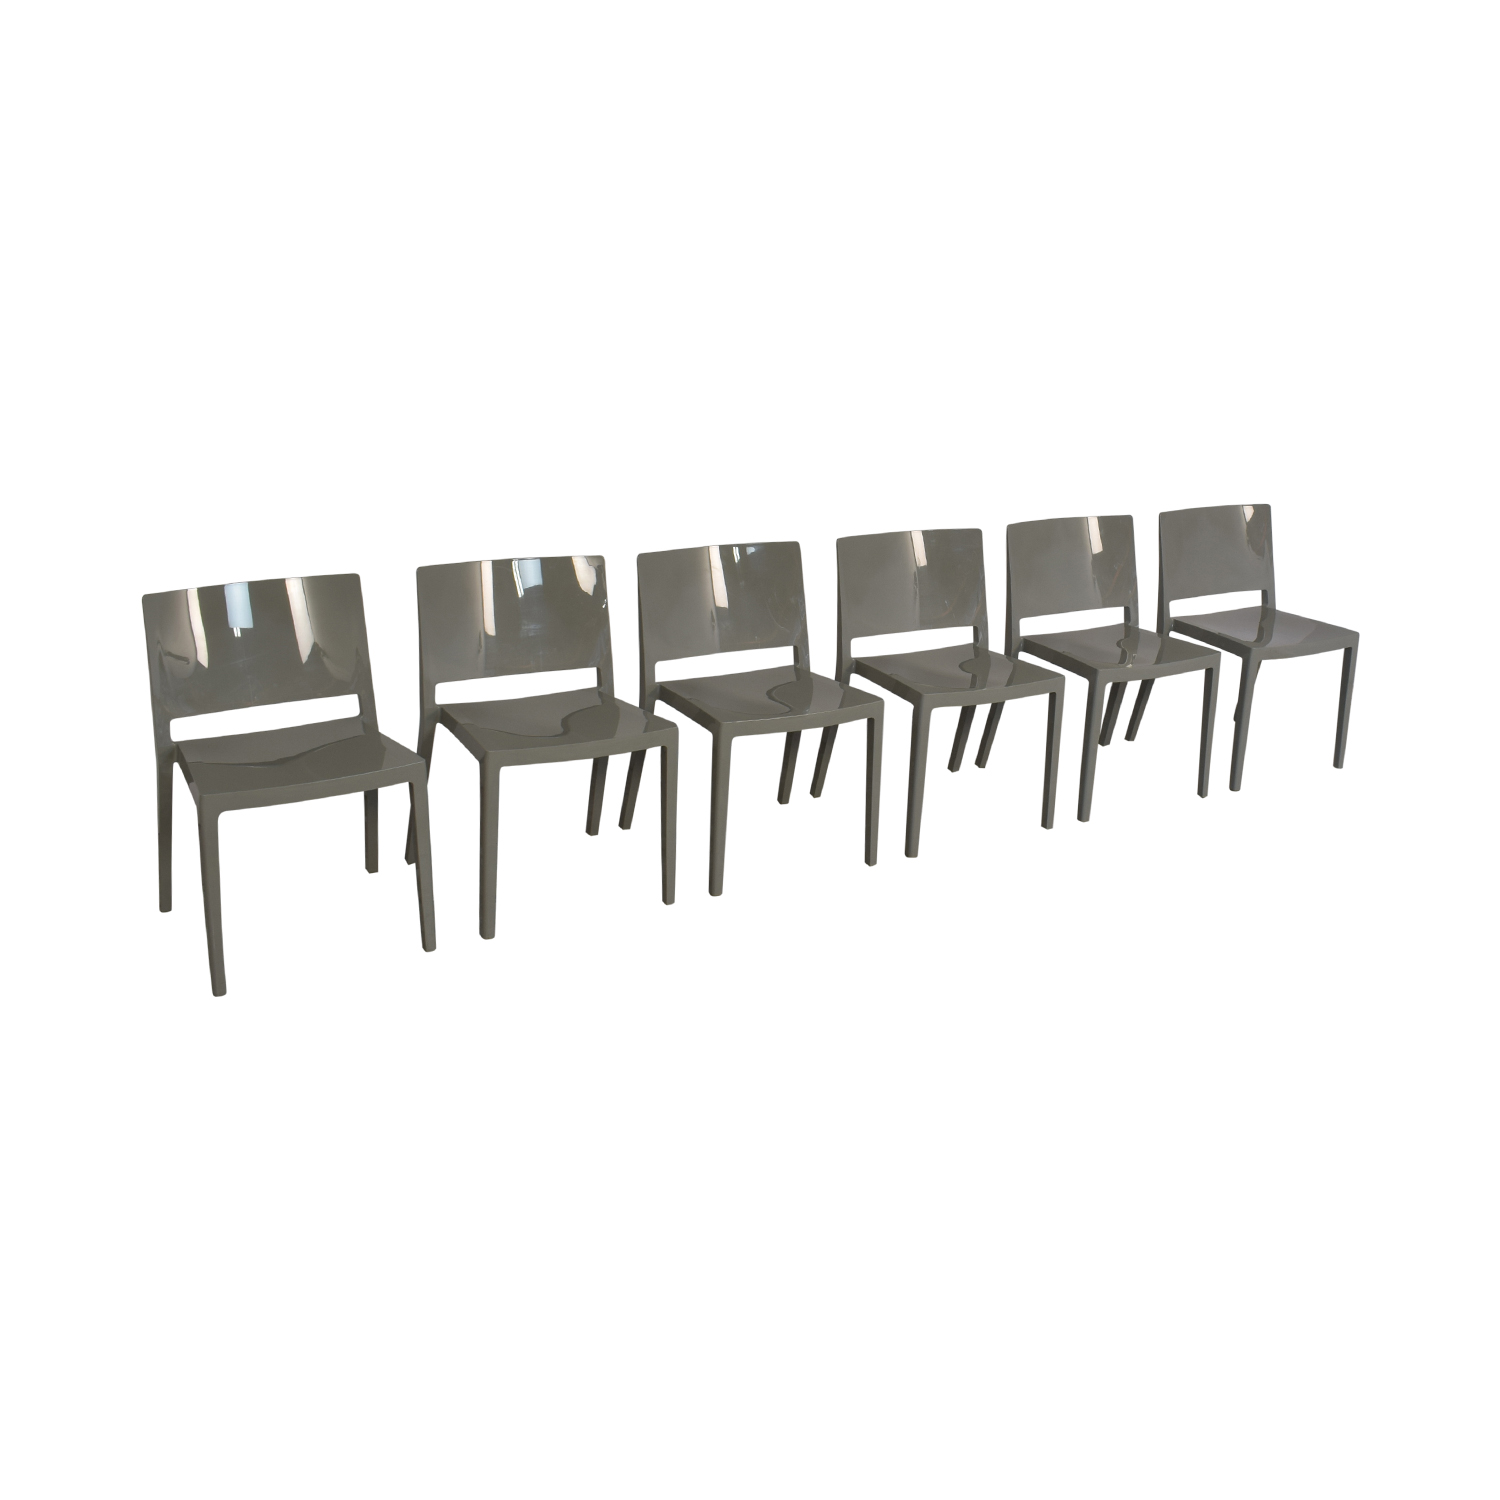 Kartell Kartell Lizz Chairs nyc